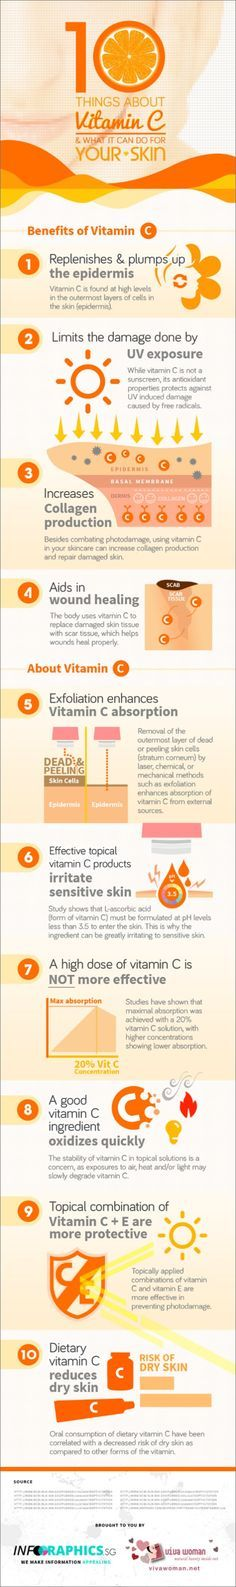 Infograpics on 10 things vitamin C can do for your skin.